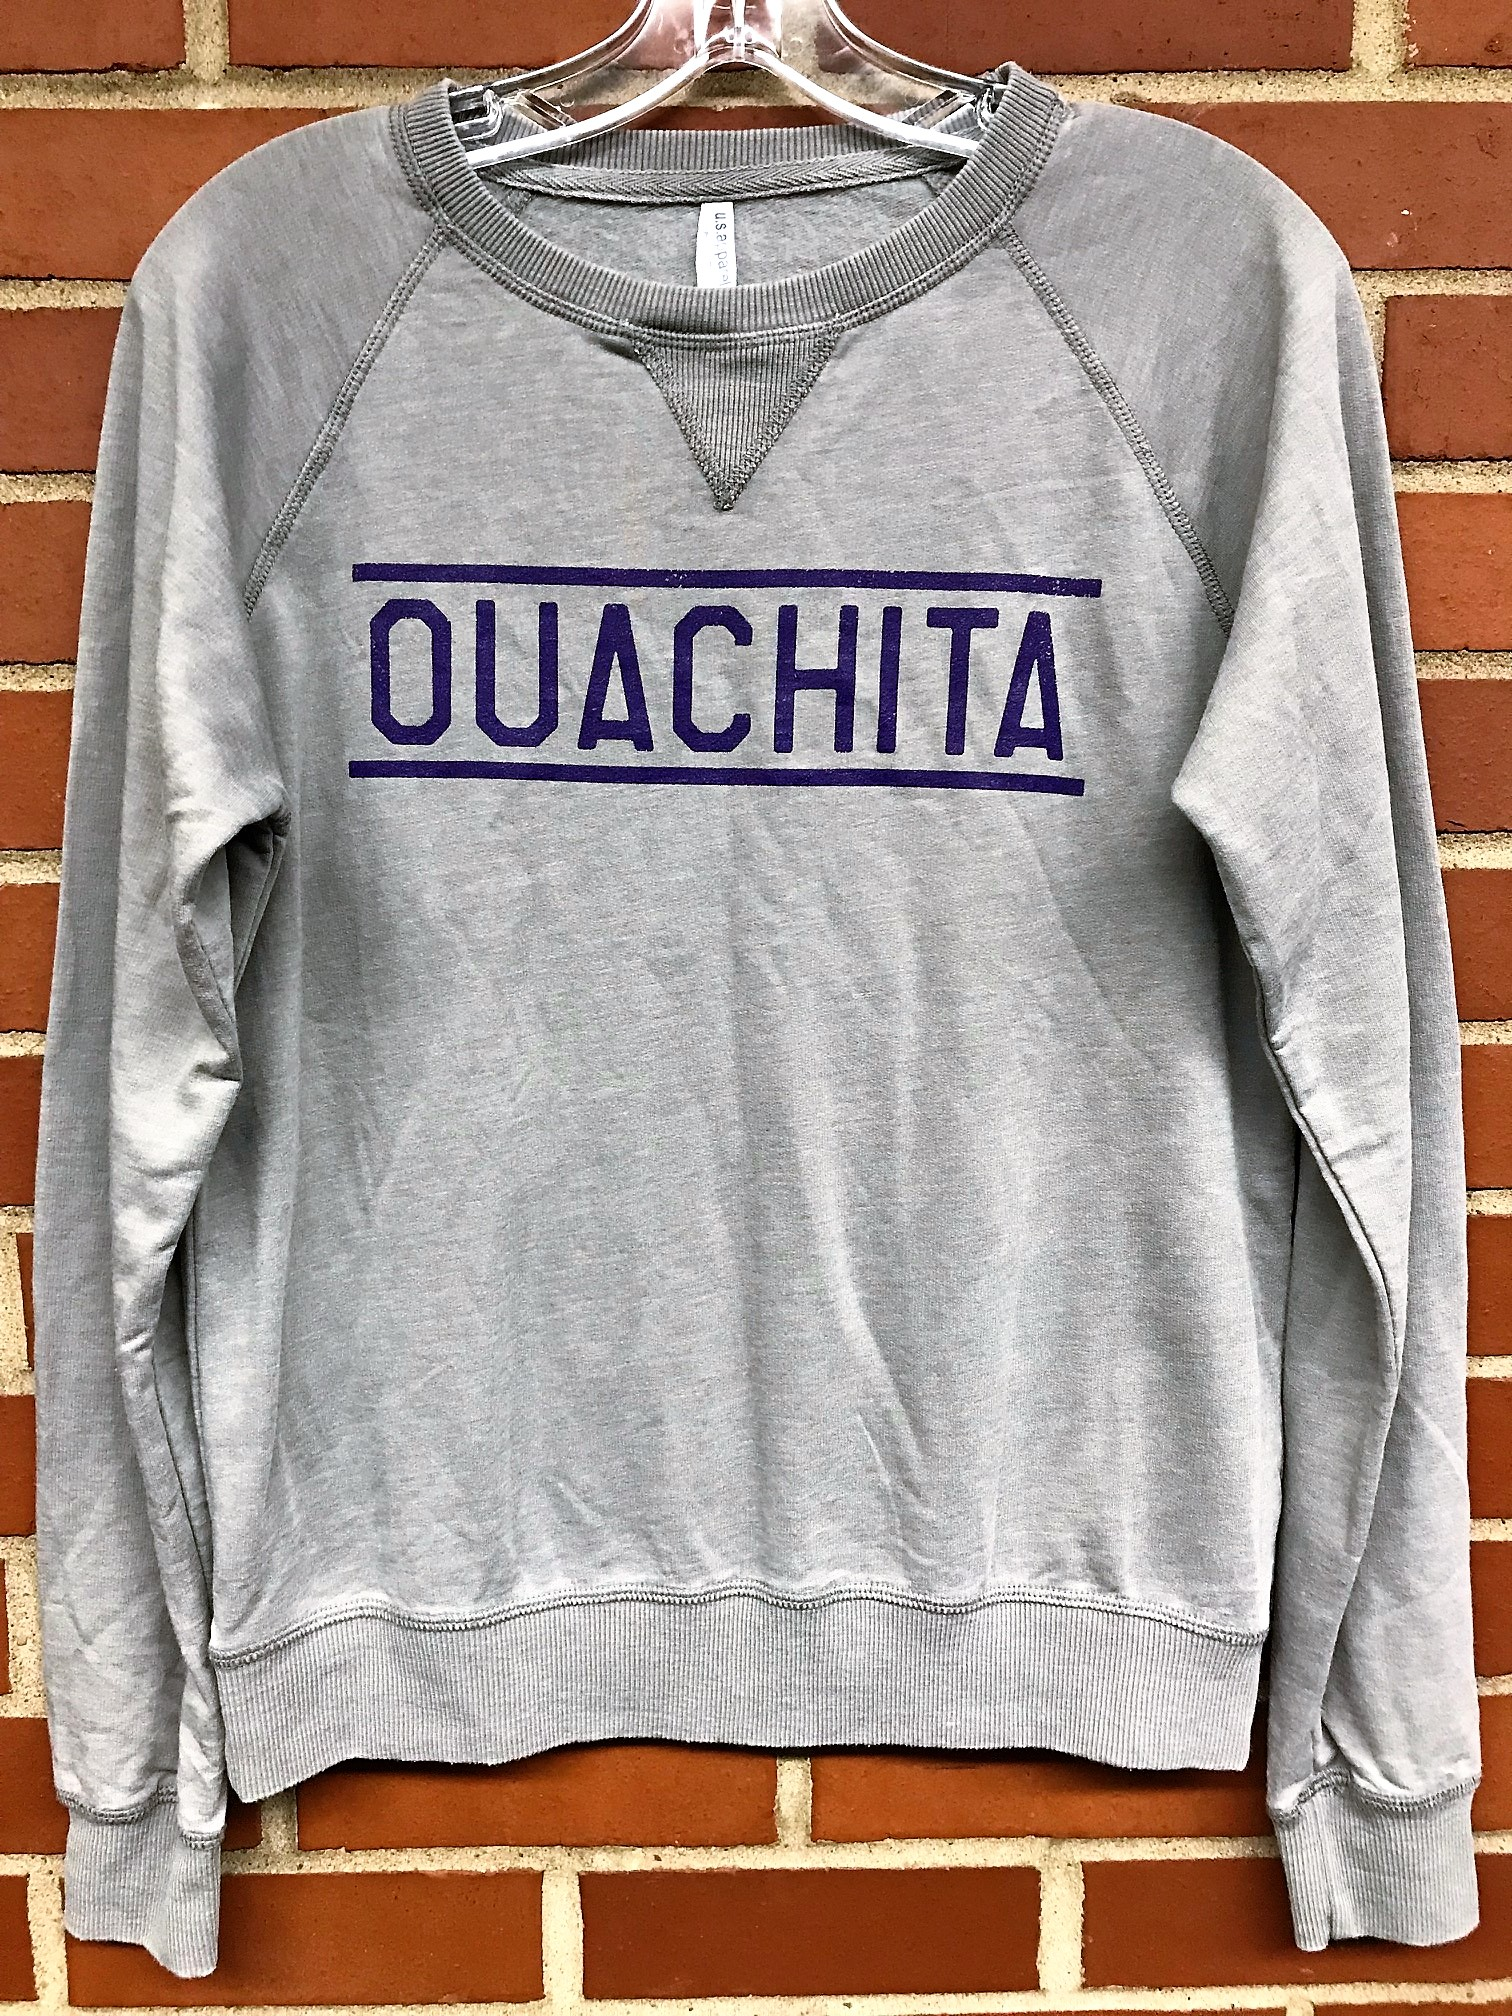 OUACHITA VINTAGE WASHED CREW NECK